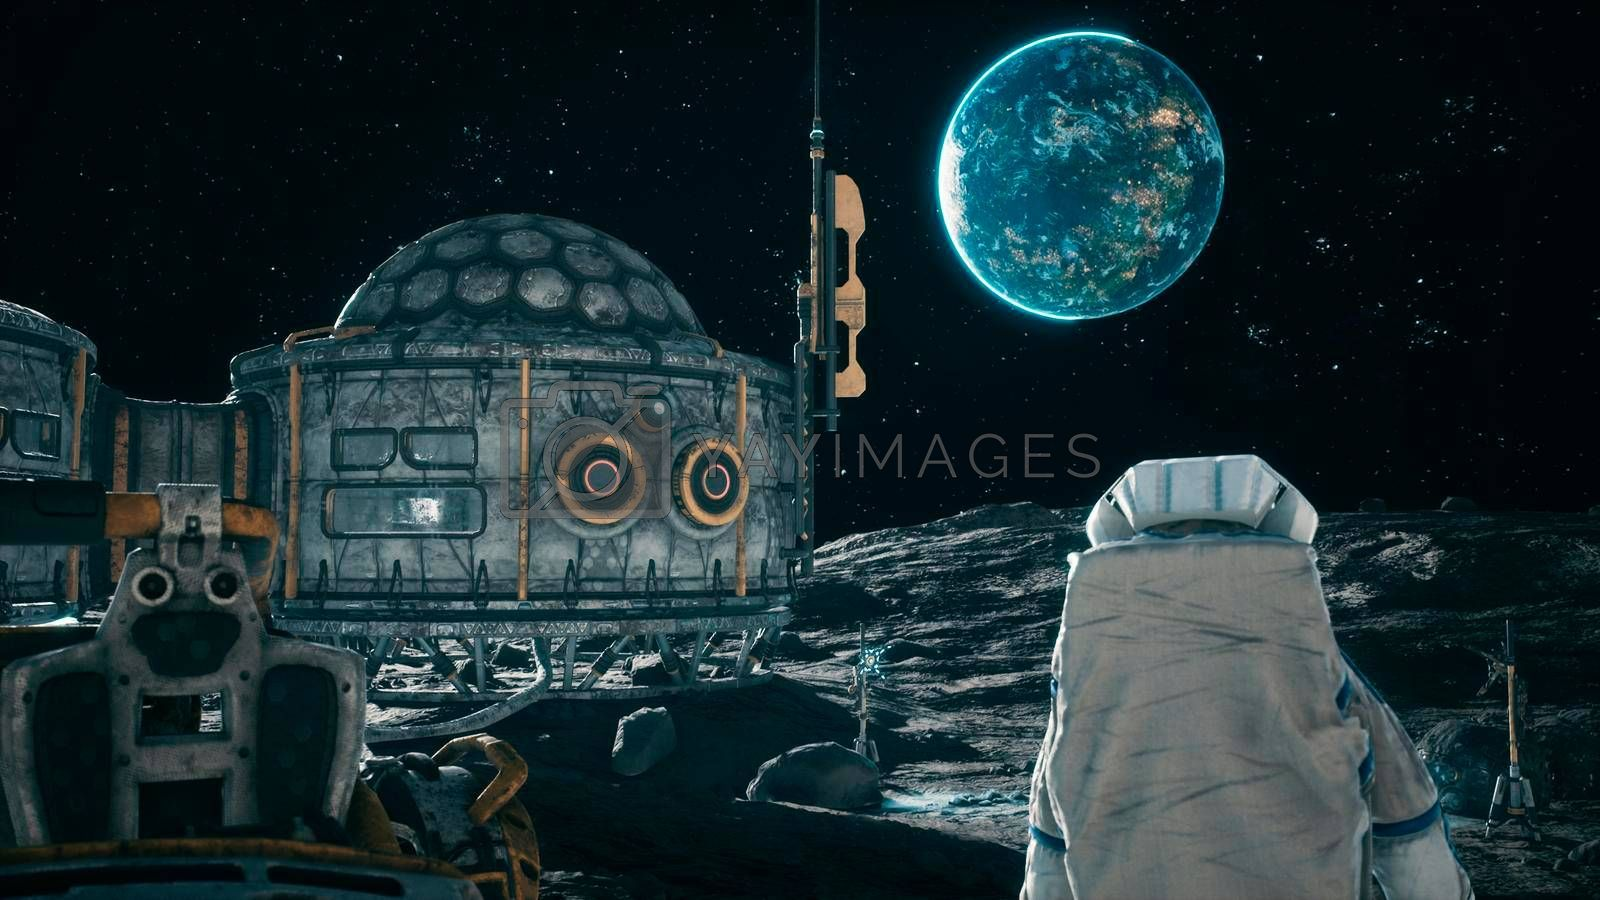 View of the lunar surface, lunar colony and astronauts working at the space base next to the lunar rover. View of the future lunar base.